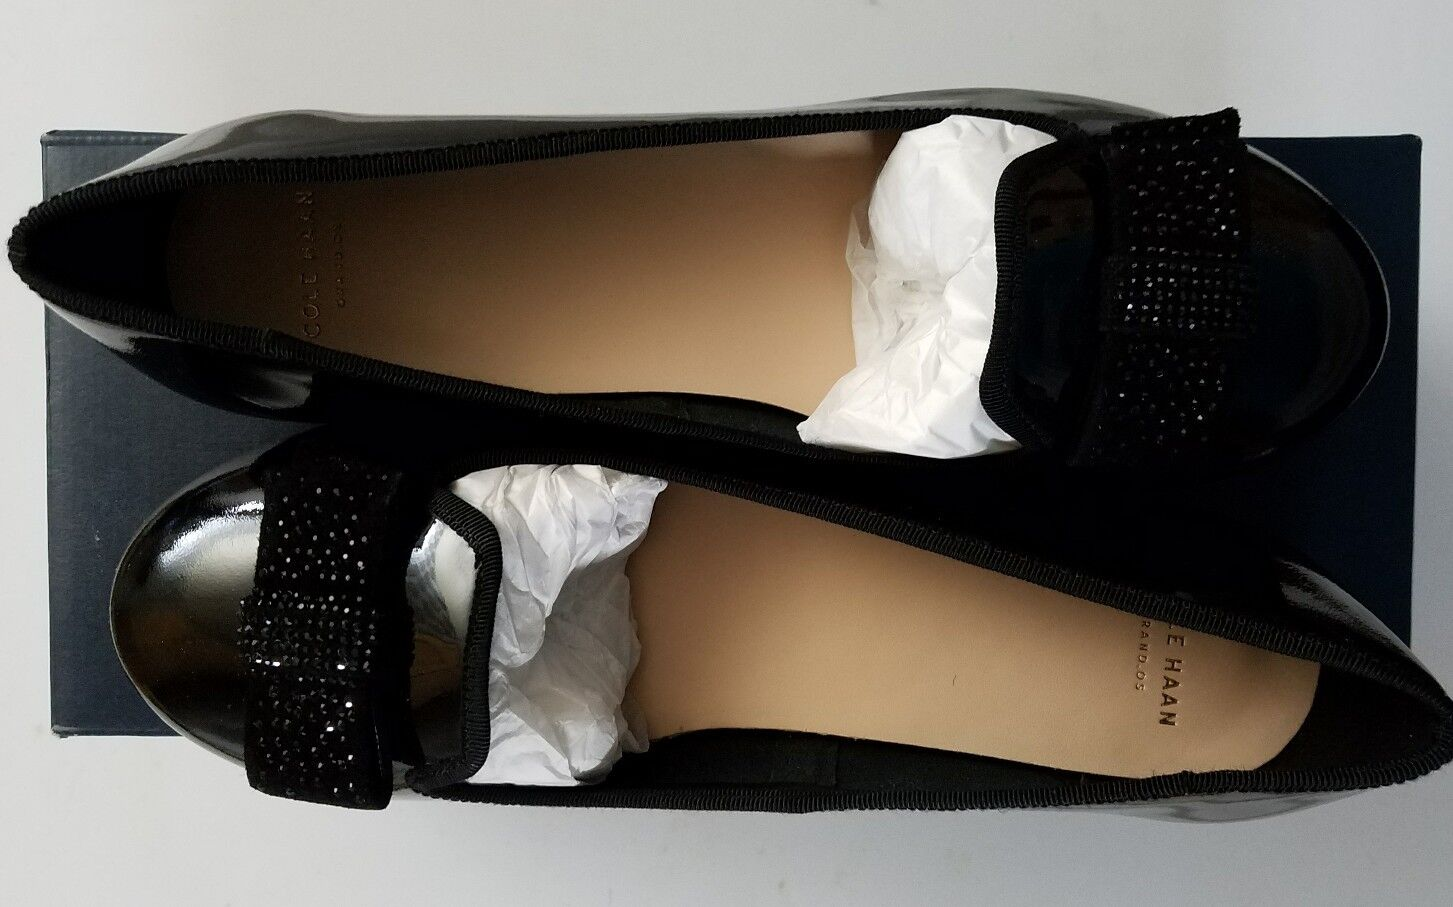 Cole Haan Morgan Slipper Slipper Morgan Jewel Bow Ballet Flat Shoe Black Patent Leather Size 7 2345a1